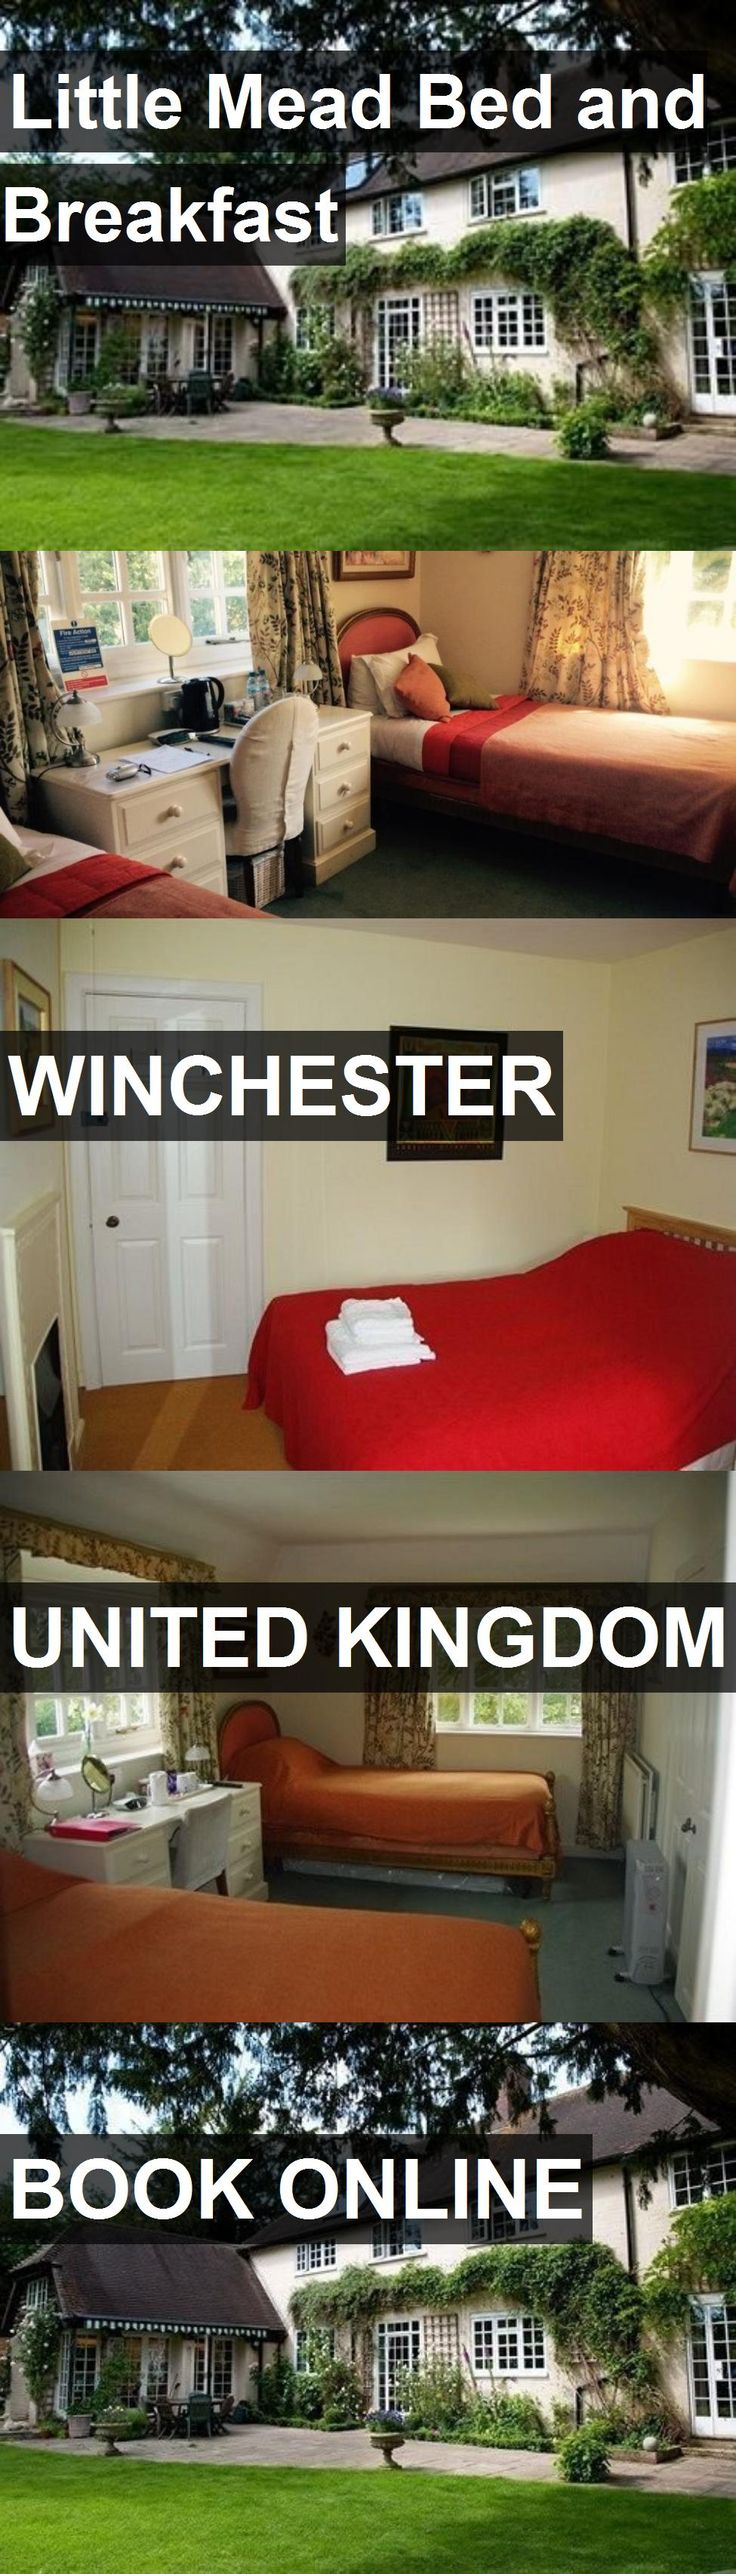 Hotel Little Mead Bed and Breakfast in WINCHESTER, United Kingdom. For more information, photos, reviews and best prices please follow the link. #UnitedKingdom #WINCHESTER #LittleMeadBedandBreakfast #hotel #travel #vacation